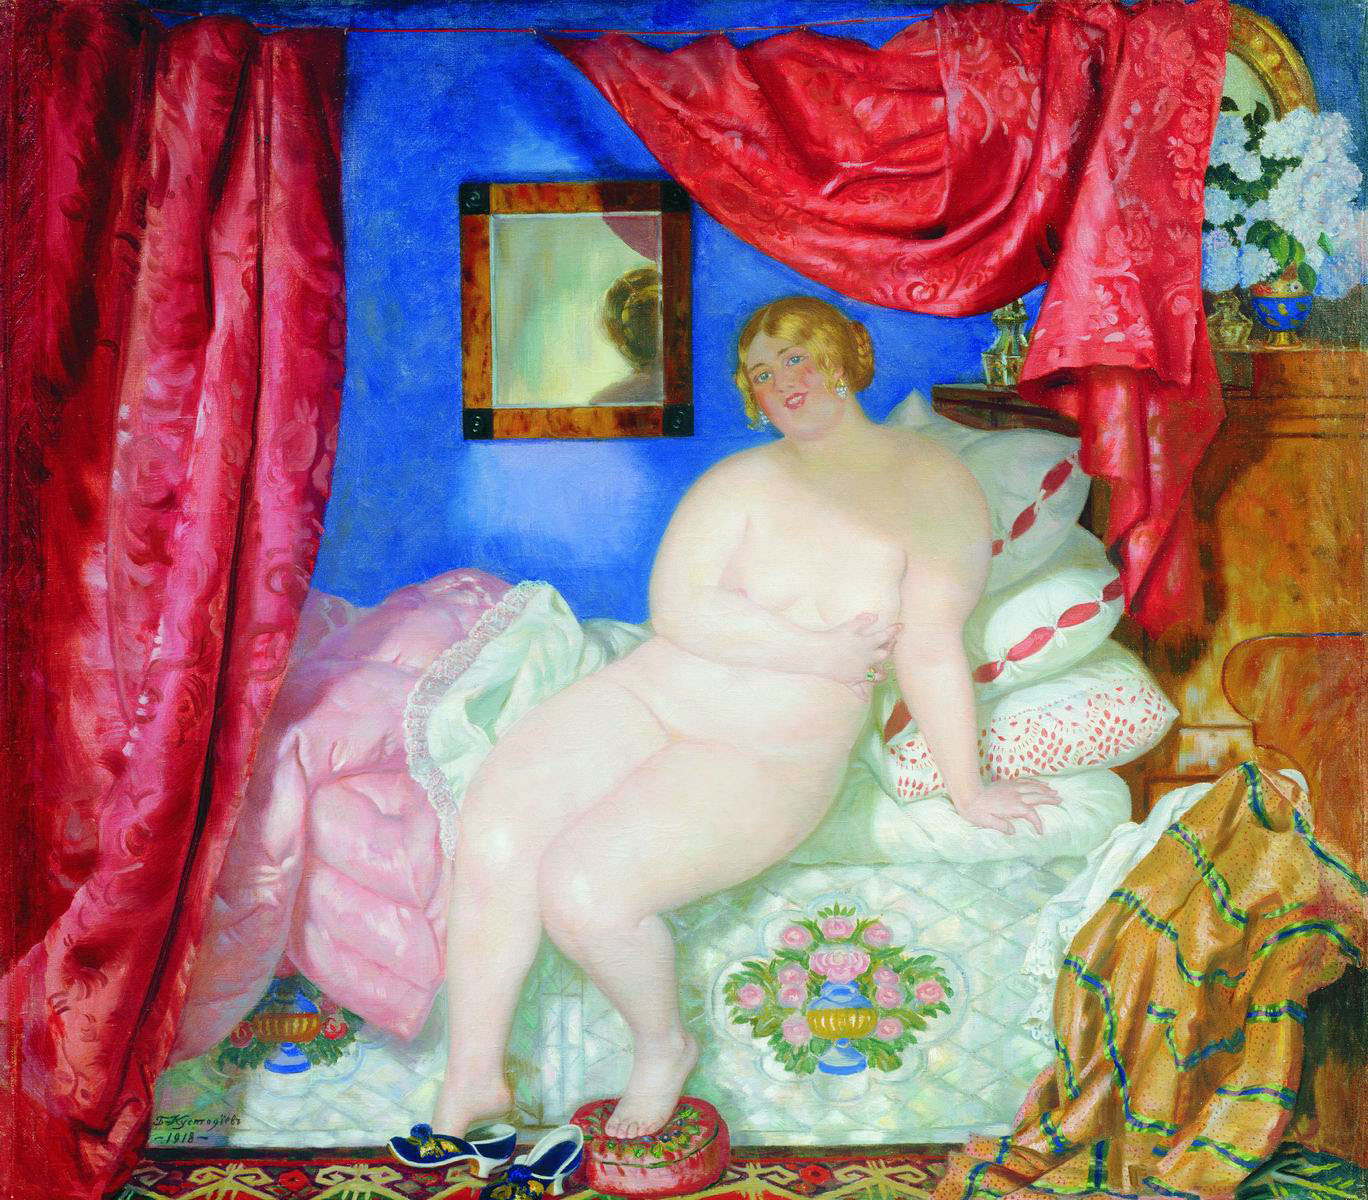 http://uploads6.wikipaintings.org/images/boris-kustodiev/beauty-1918.jpg